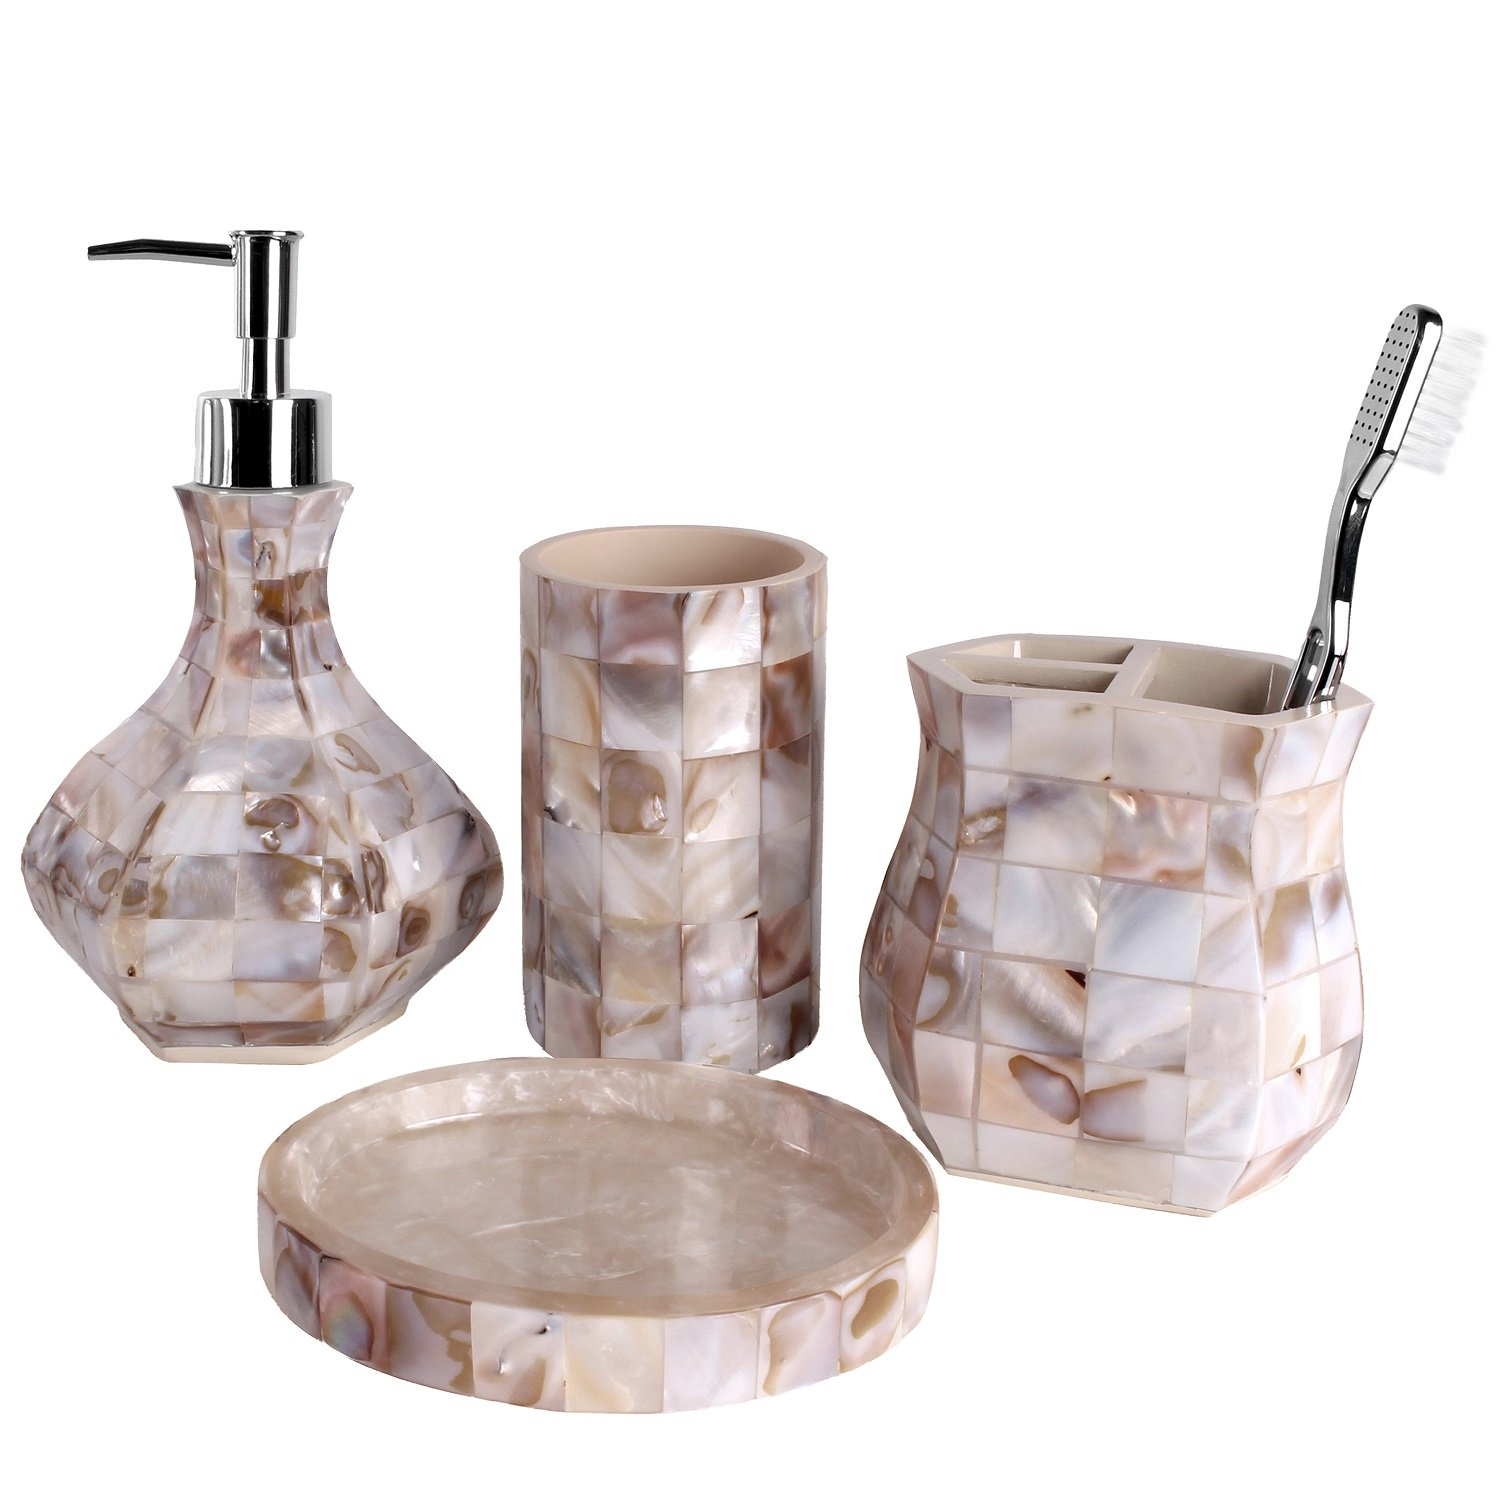 Amazon com creative scents milano bath ensemble 4 piece bathroom accessories set mother of pearl milano collection bath set features soap dispenser